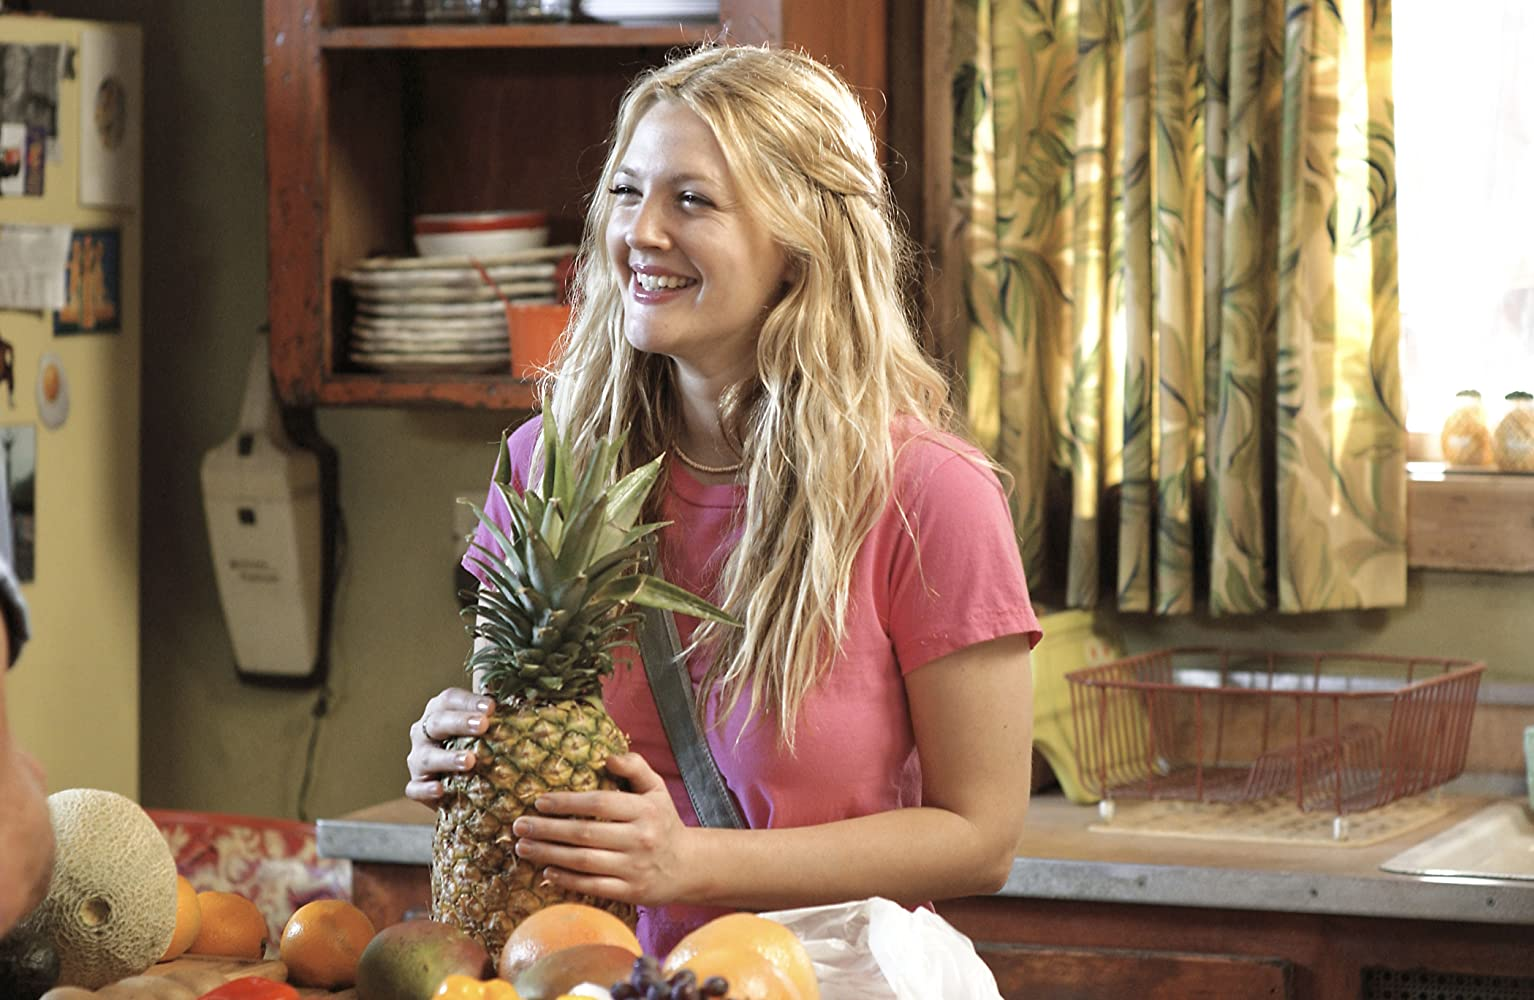 Drew Barrymore in 50 First Dates (2004)